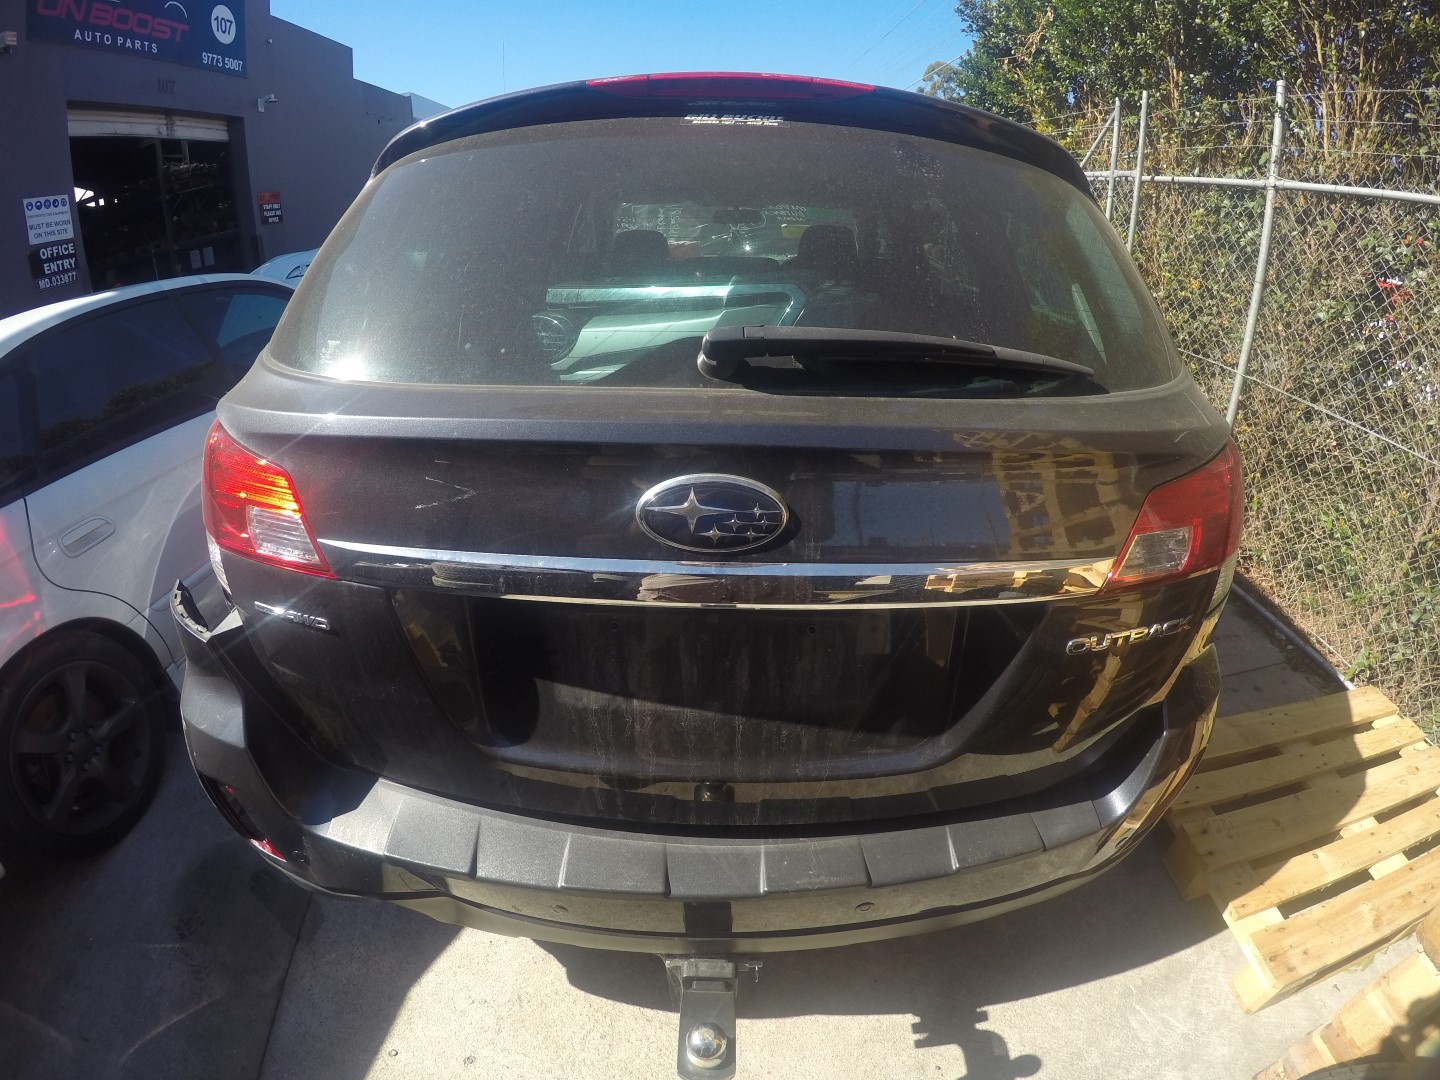 Subaru Wrecking Outback EJ25 Parts Spares Leather Panels